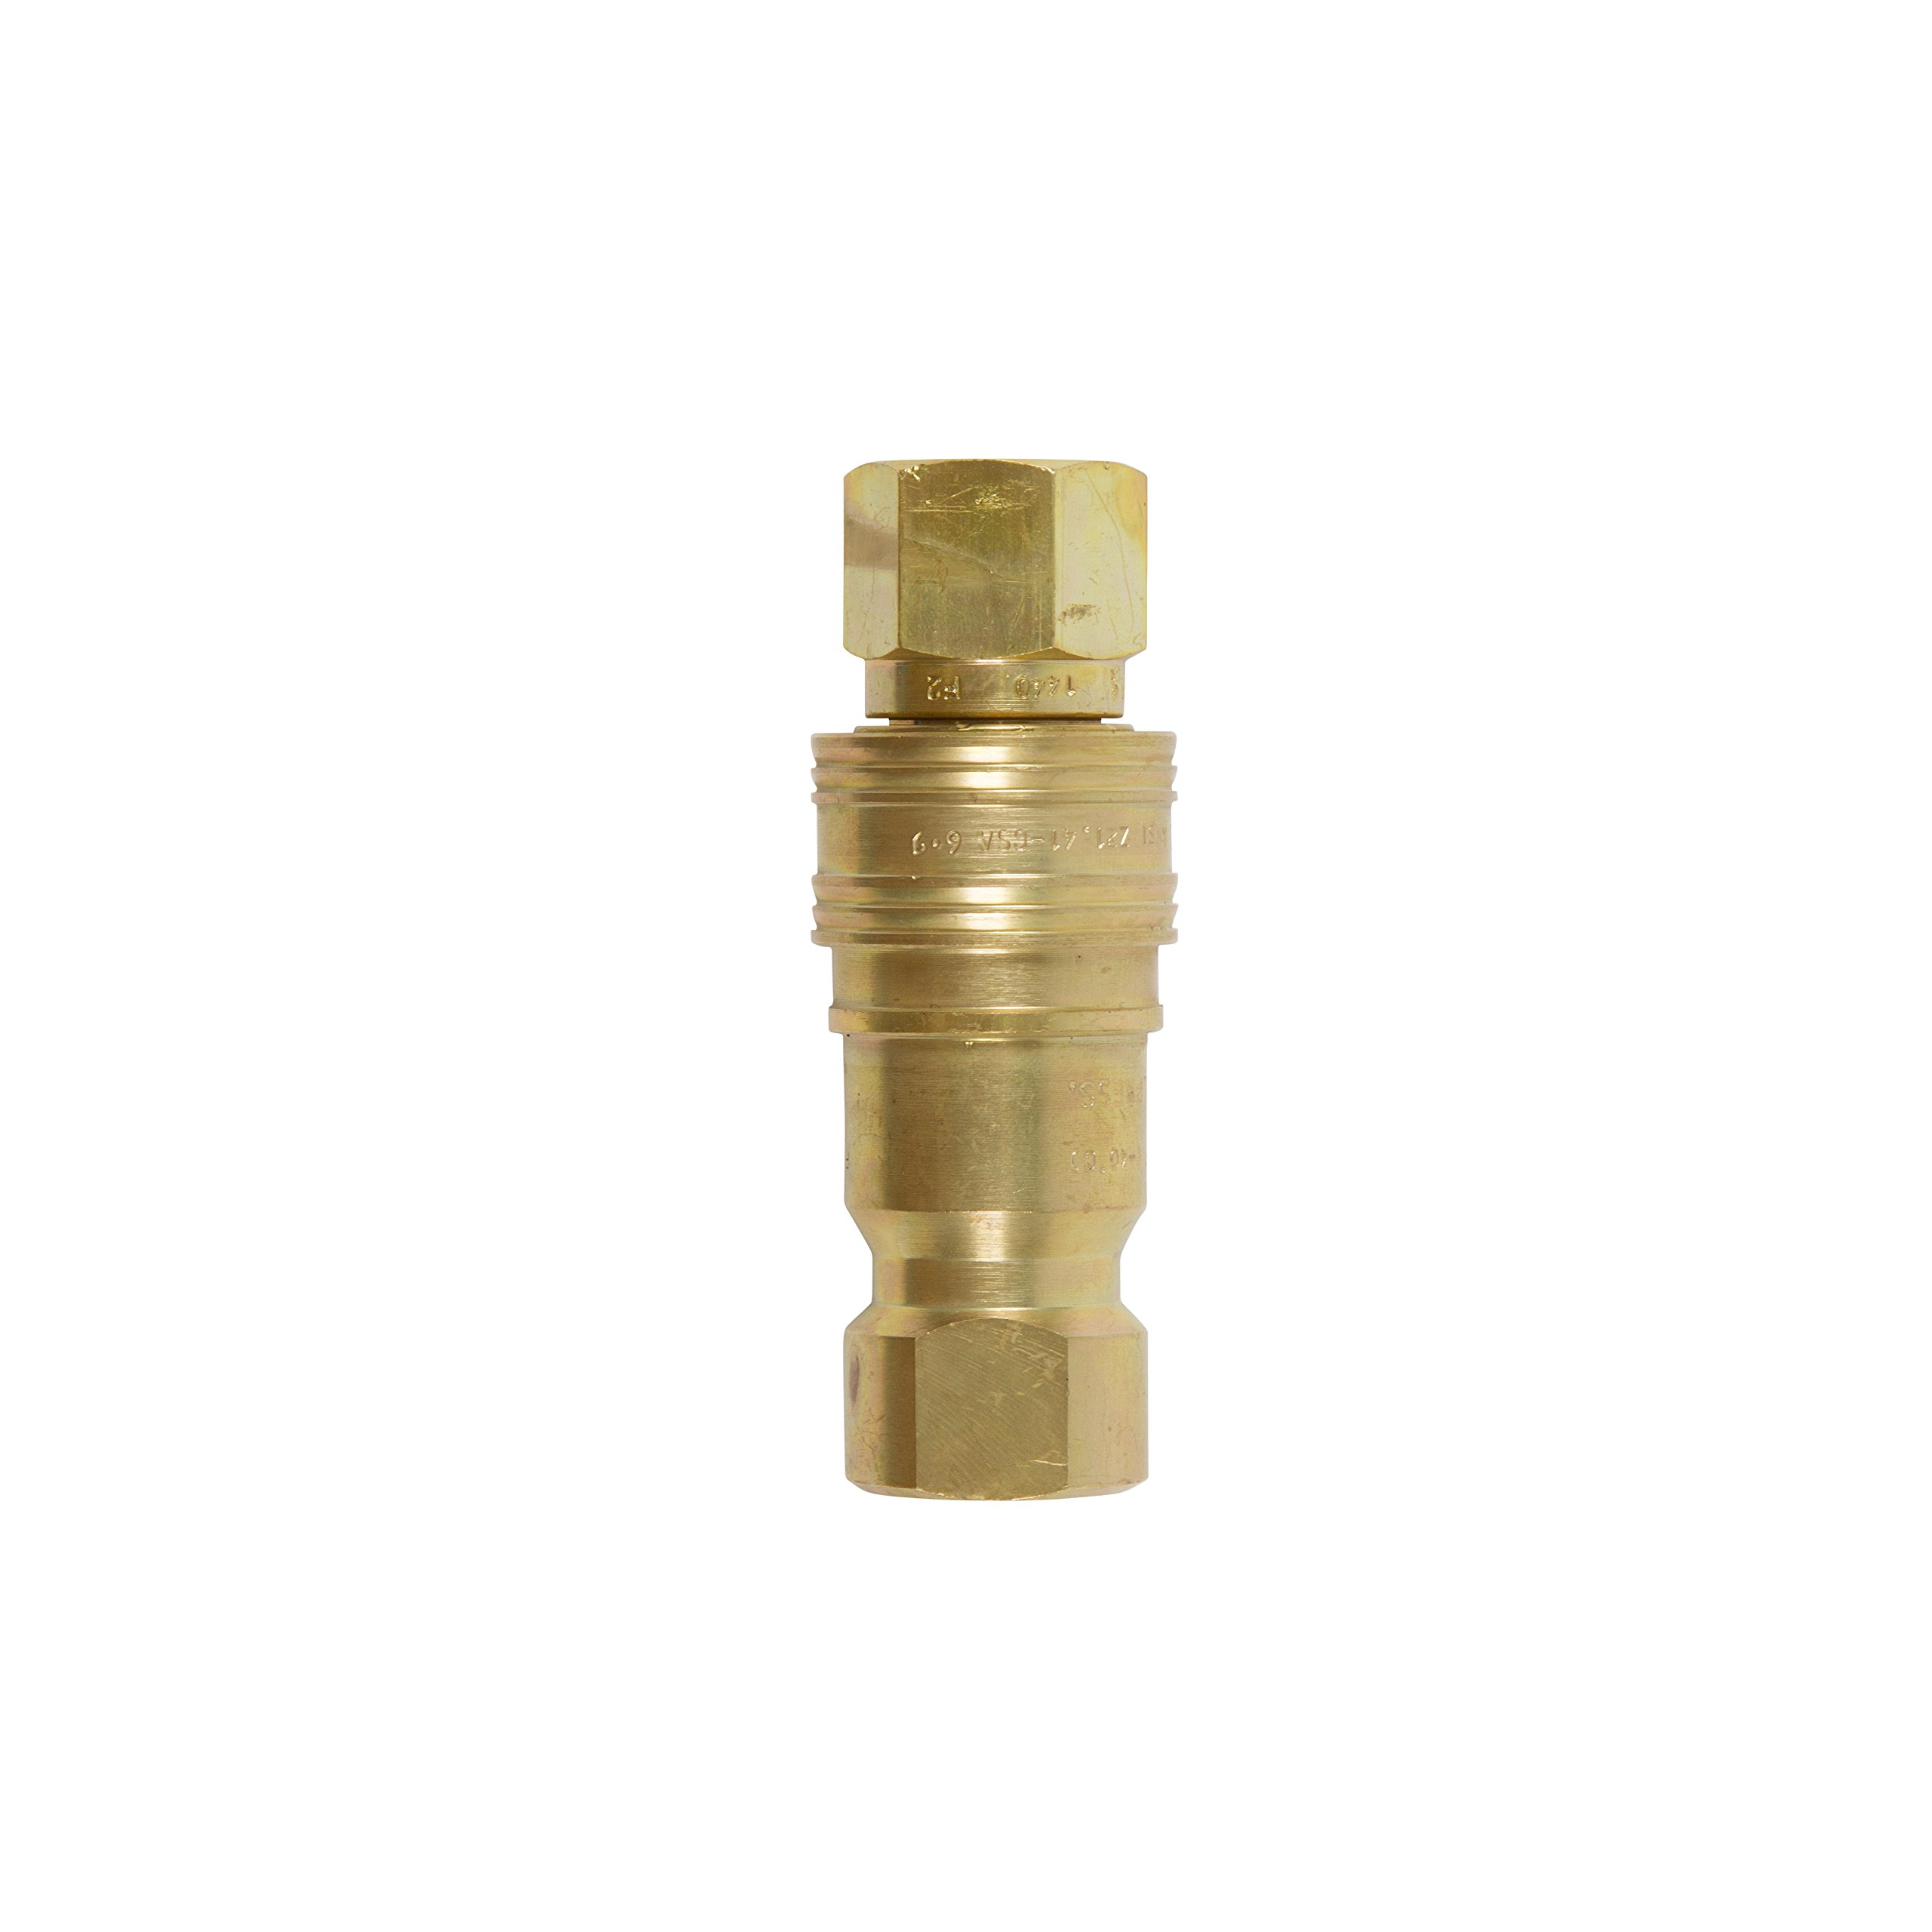 Gas Fire Pit/ Heater BRASS HEAVY DUTY QUICK CONNECT/ DISCONNECT SUPPLY AND RECEIVING SIDES FOR PROPANE / NATURAL GAS (1/2'' Complete Quick Connect)